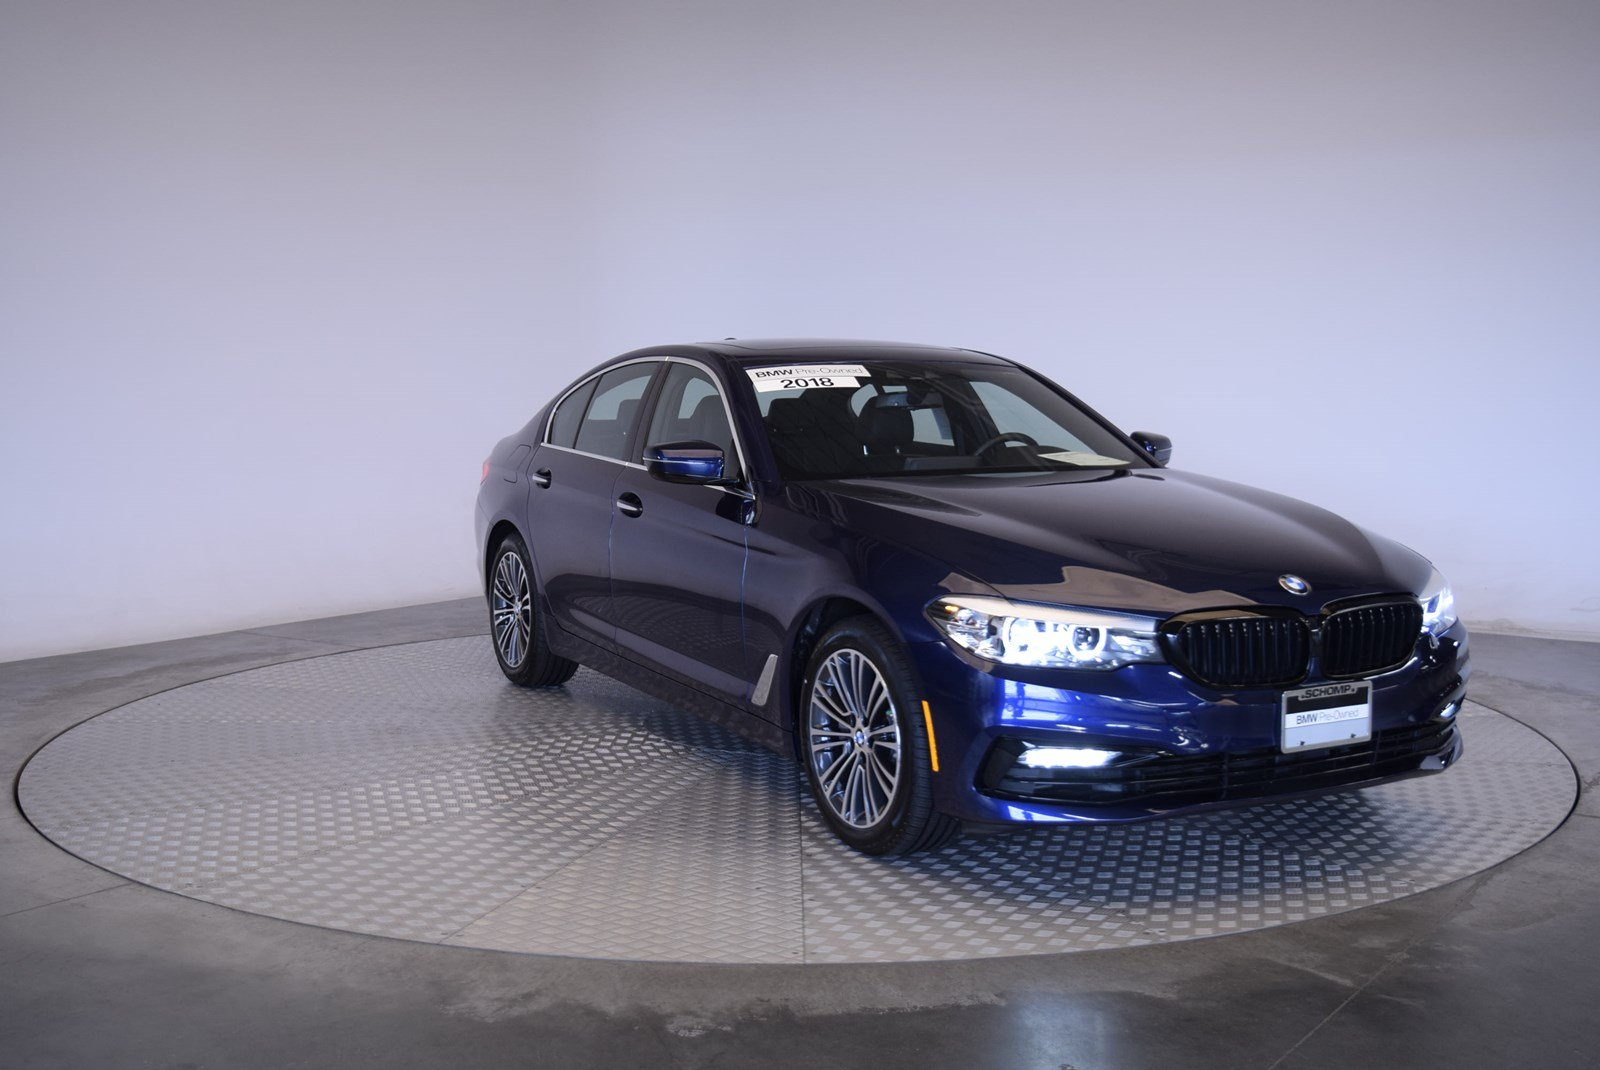 Pre Owned 2018 Bmw 530i Xdrive 4dr Car In Highlands Ranch 1bl81126 2007 Tahoe Fuel Filter 5 Series